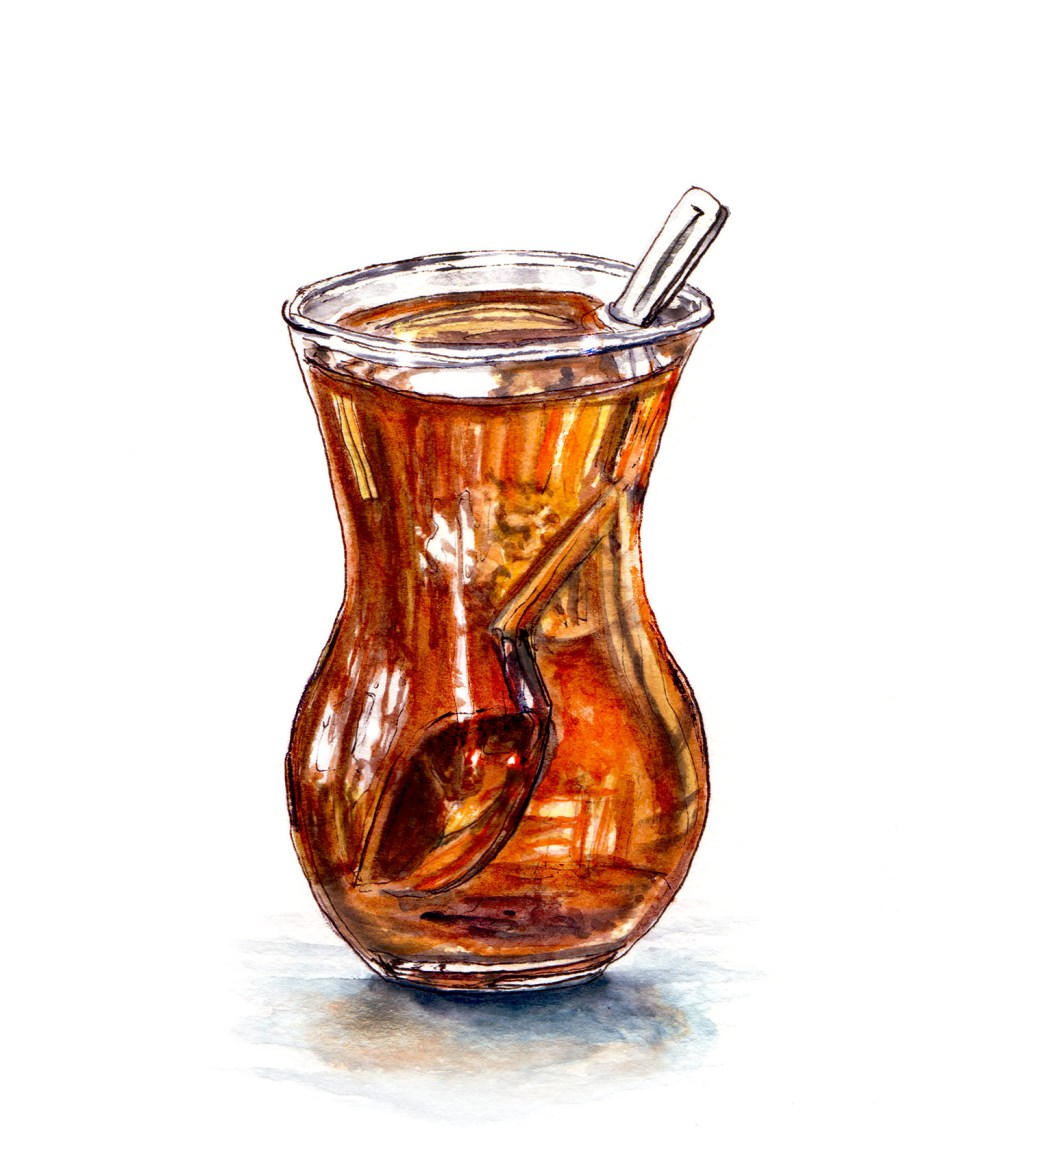 Day 18 - #WorldWatercolorGroup - Taking a Tea Break - Glass of Tea With Spoon Watercolour Sketch - #doodlewash